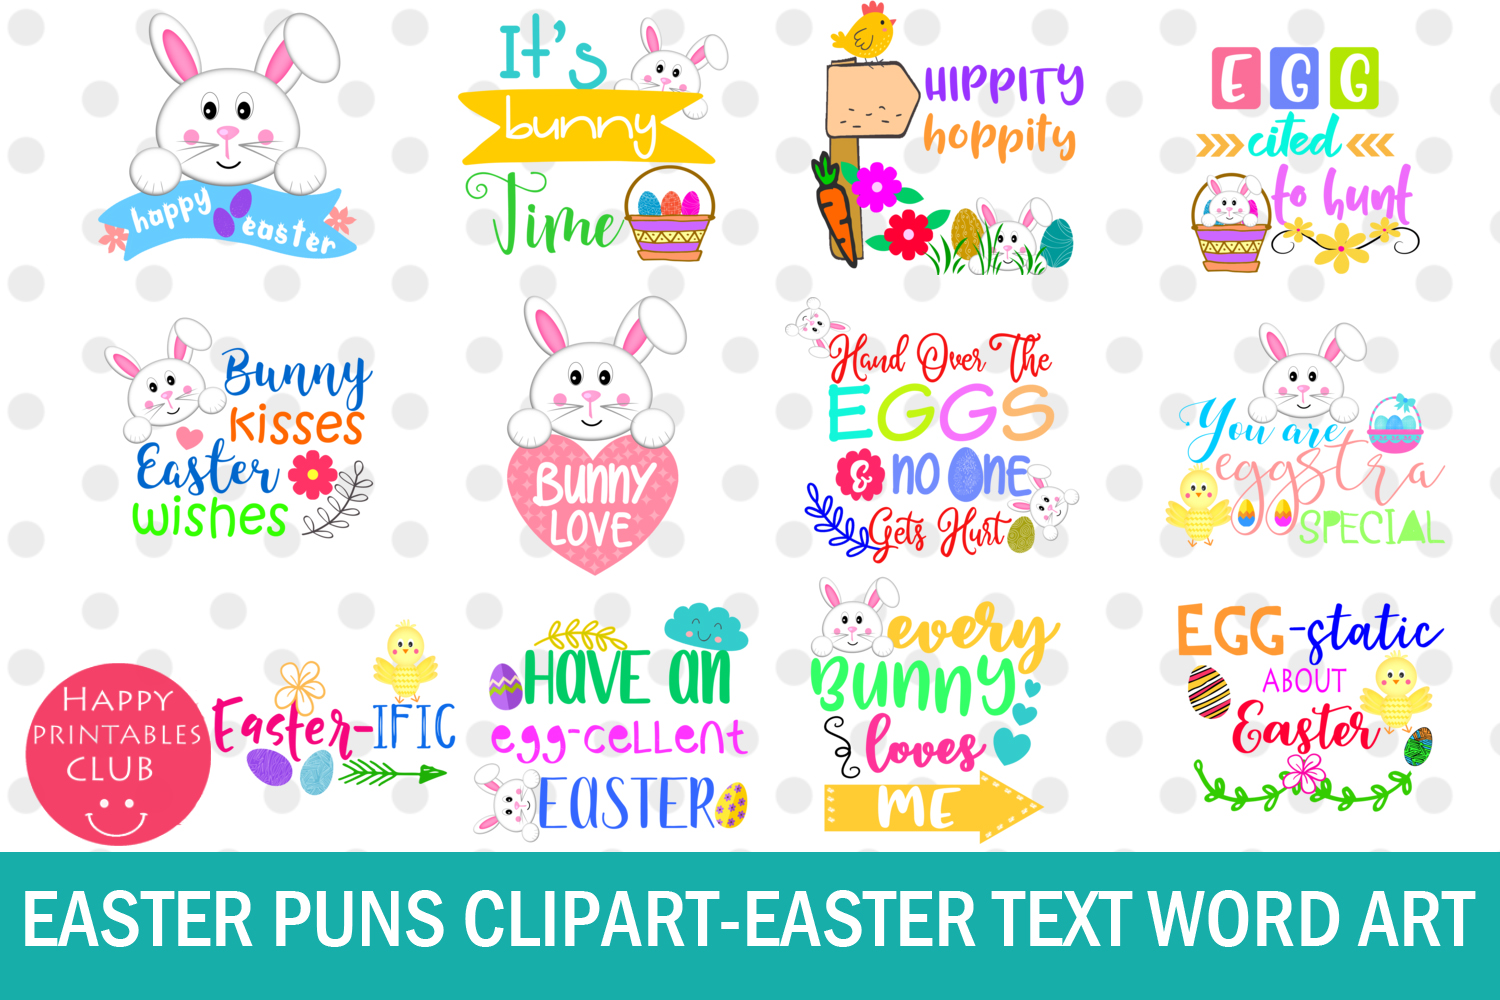 Download Free Easter Word Art Clipart Easter Puns Easter Graphic By Happy for Cricut Explore, Silhouette and other cutting machines.